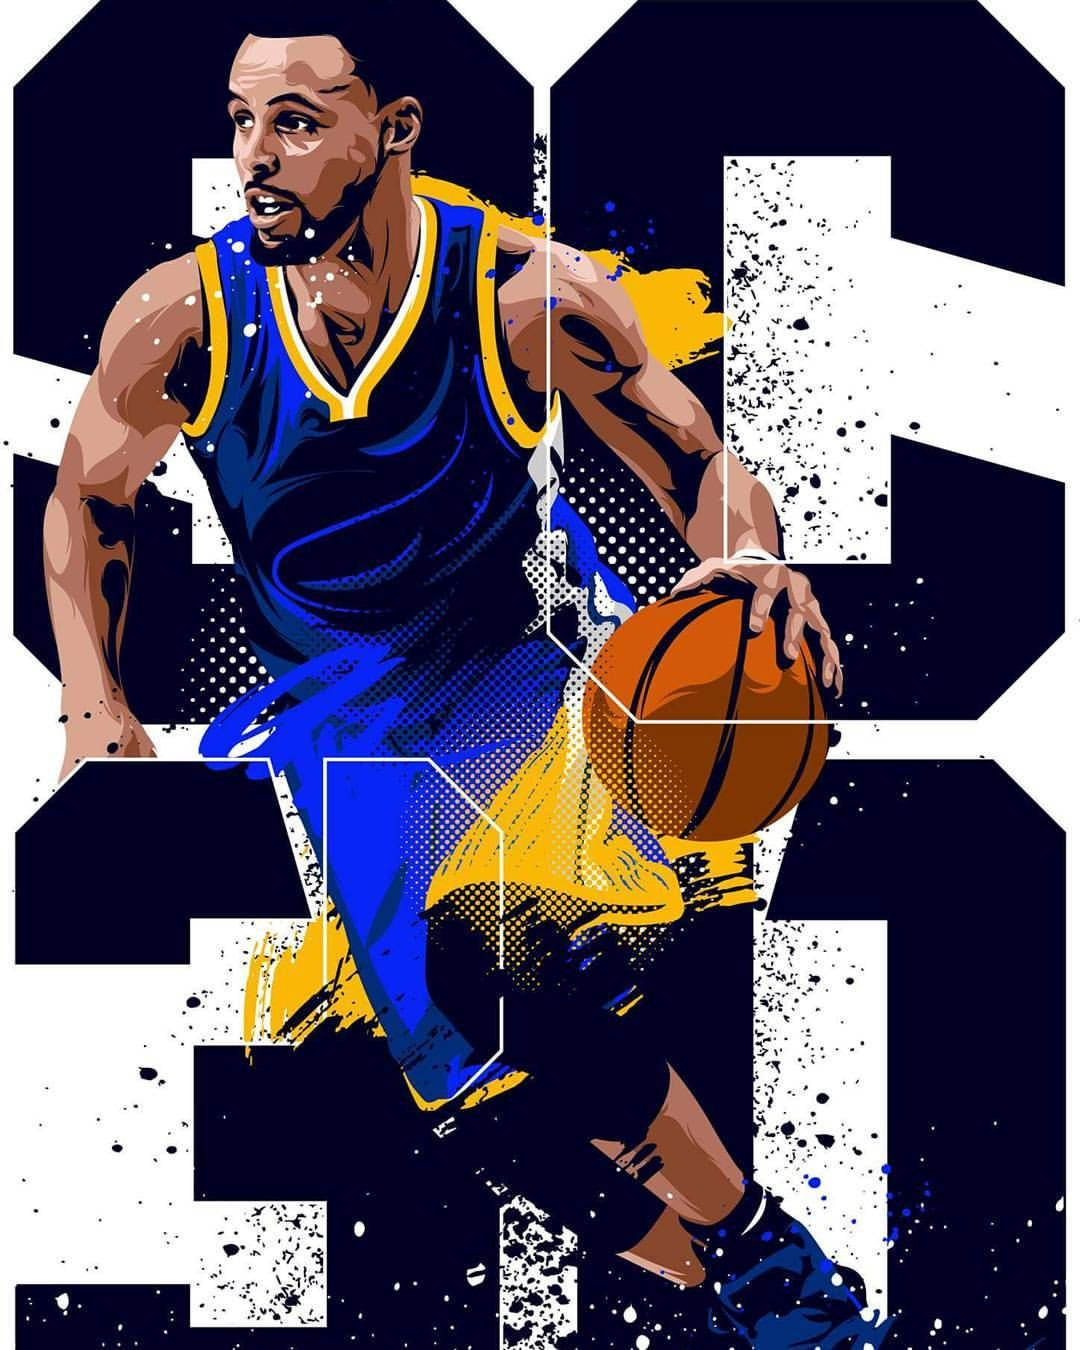 """a42825c8a32 Pabo 86 on Instagram  """" stephencurry30  ayeshacurry  hypestudioph   hypestudioph  hypestudioph  stephcurry  chef  curry  sc30  nba   illustration ..."""